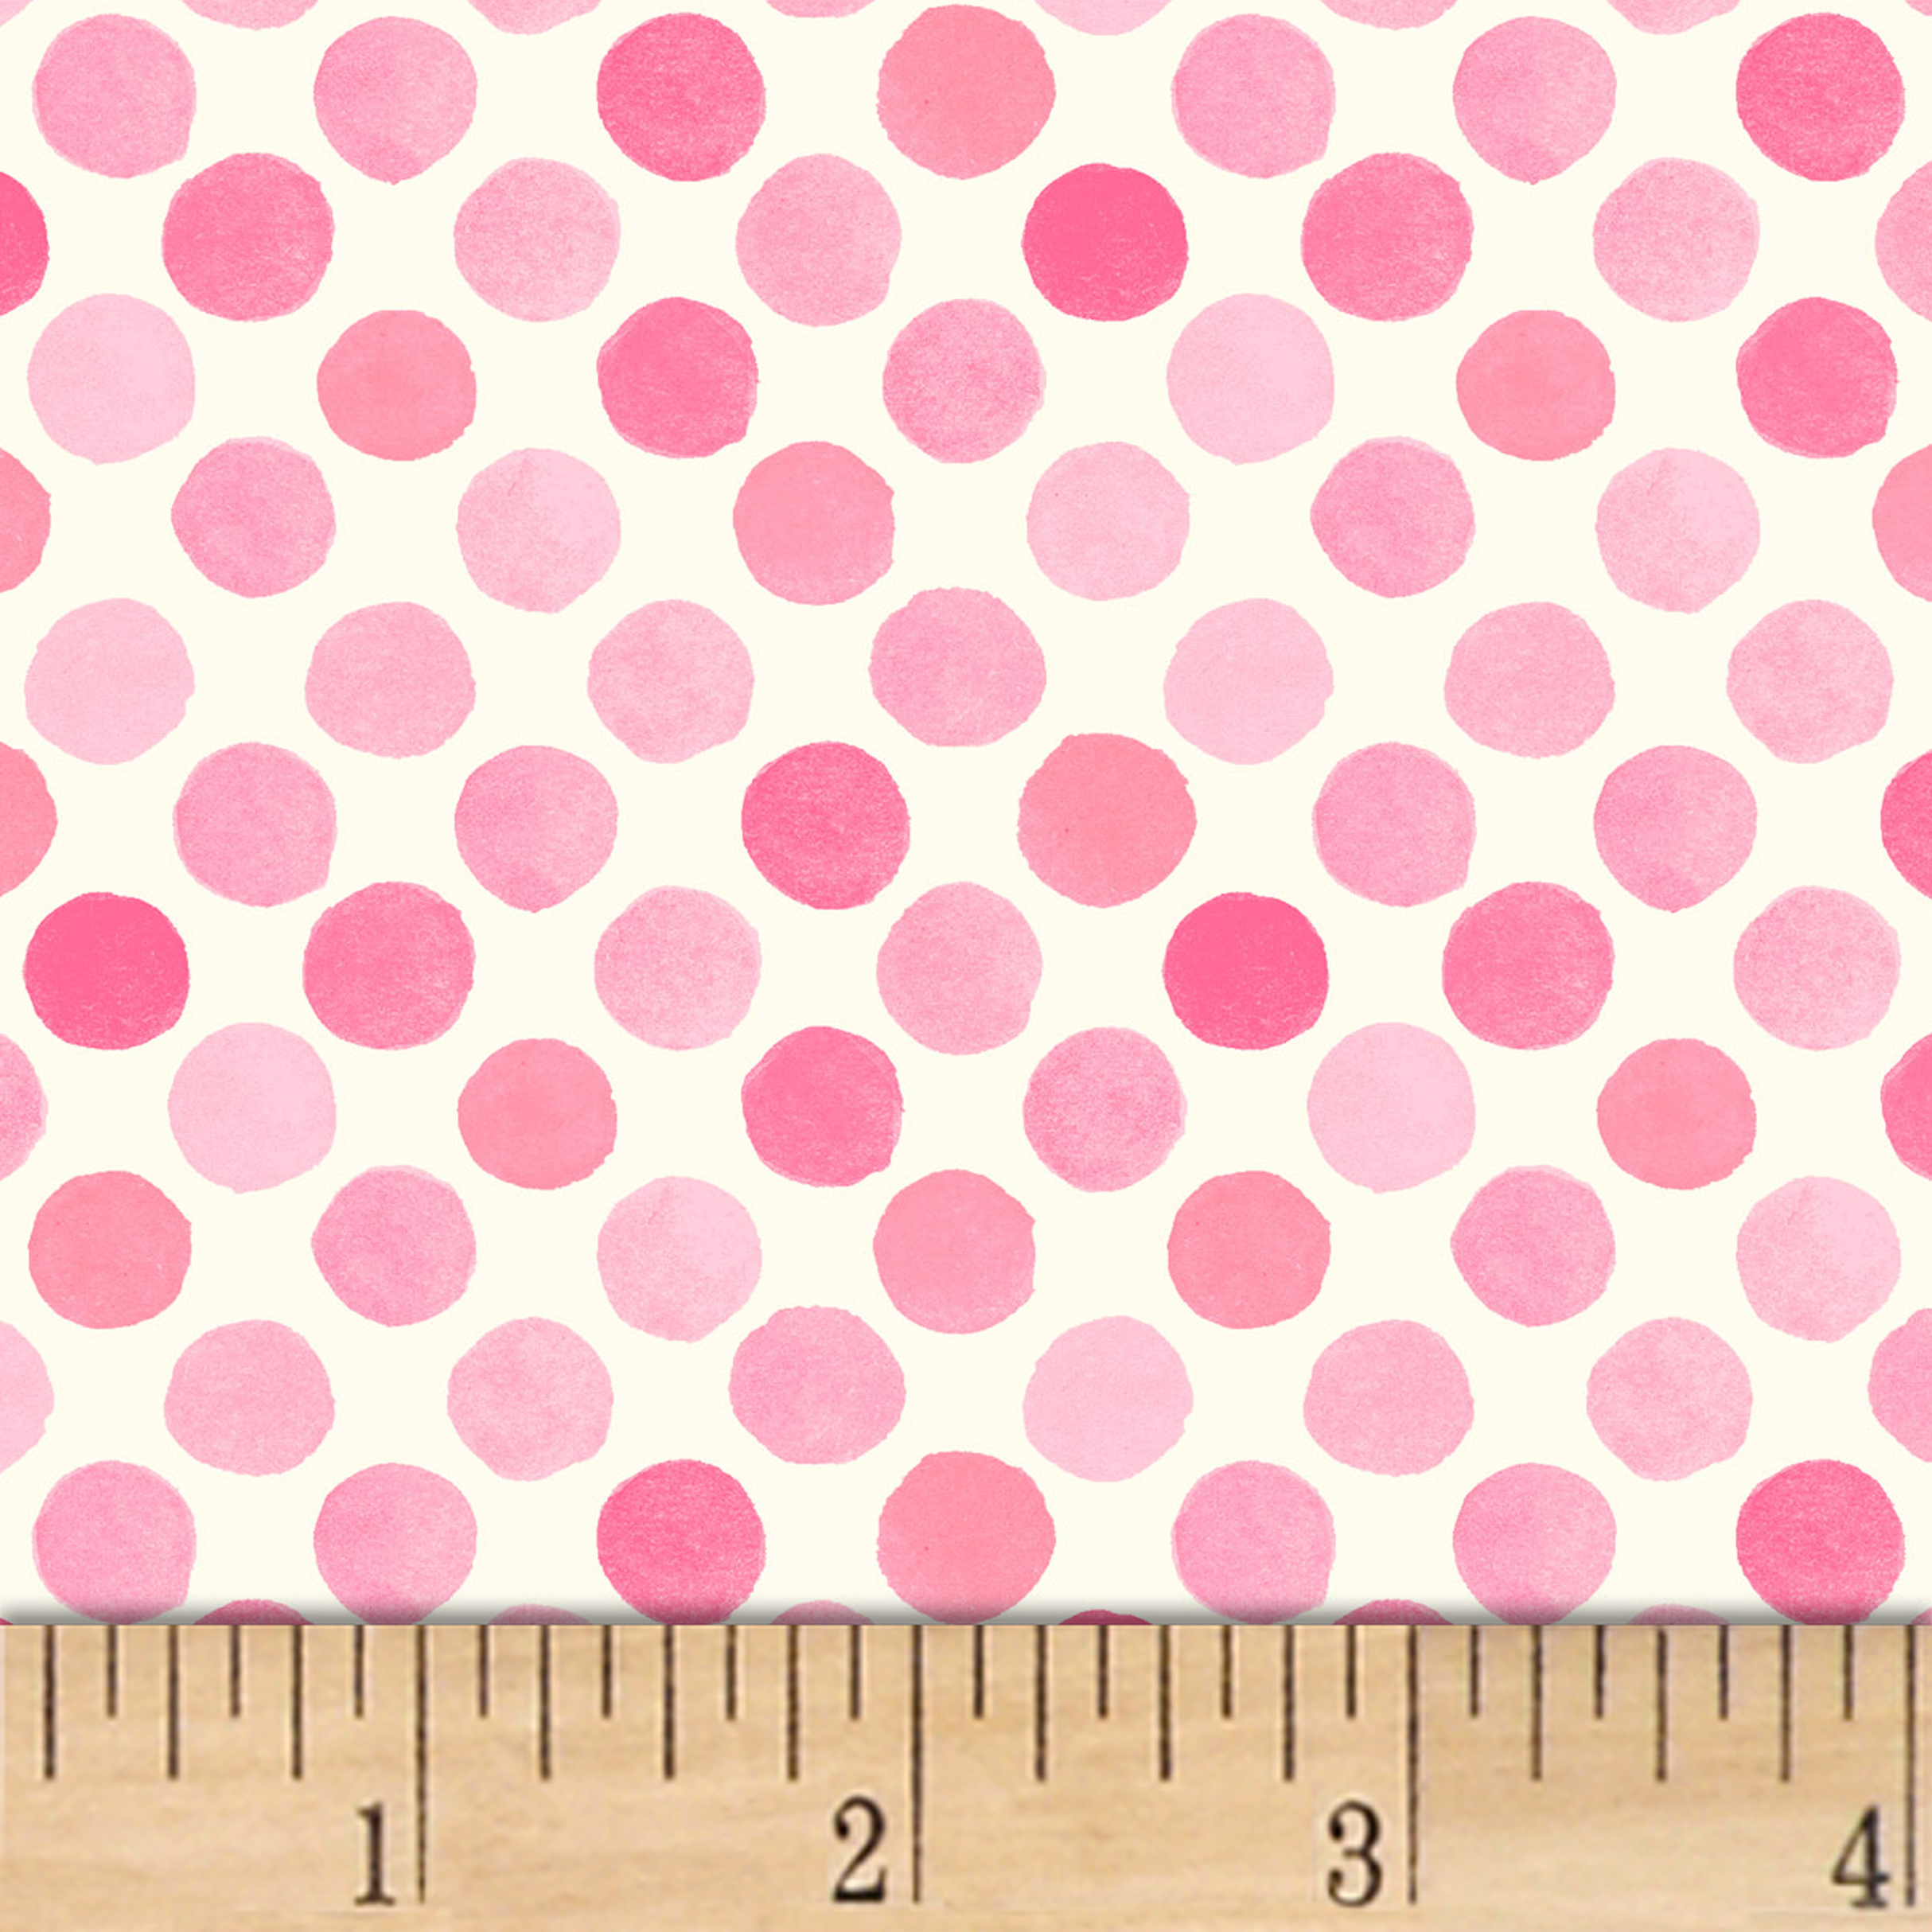 INOpets.com Anything for Pets Parents & Their Pets Lori's Art Garden Garden Dots Pink Fabric